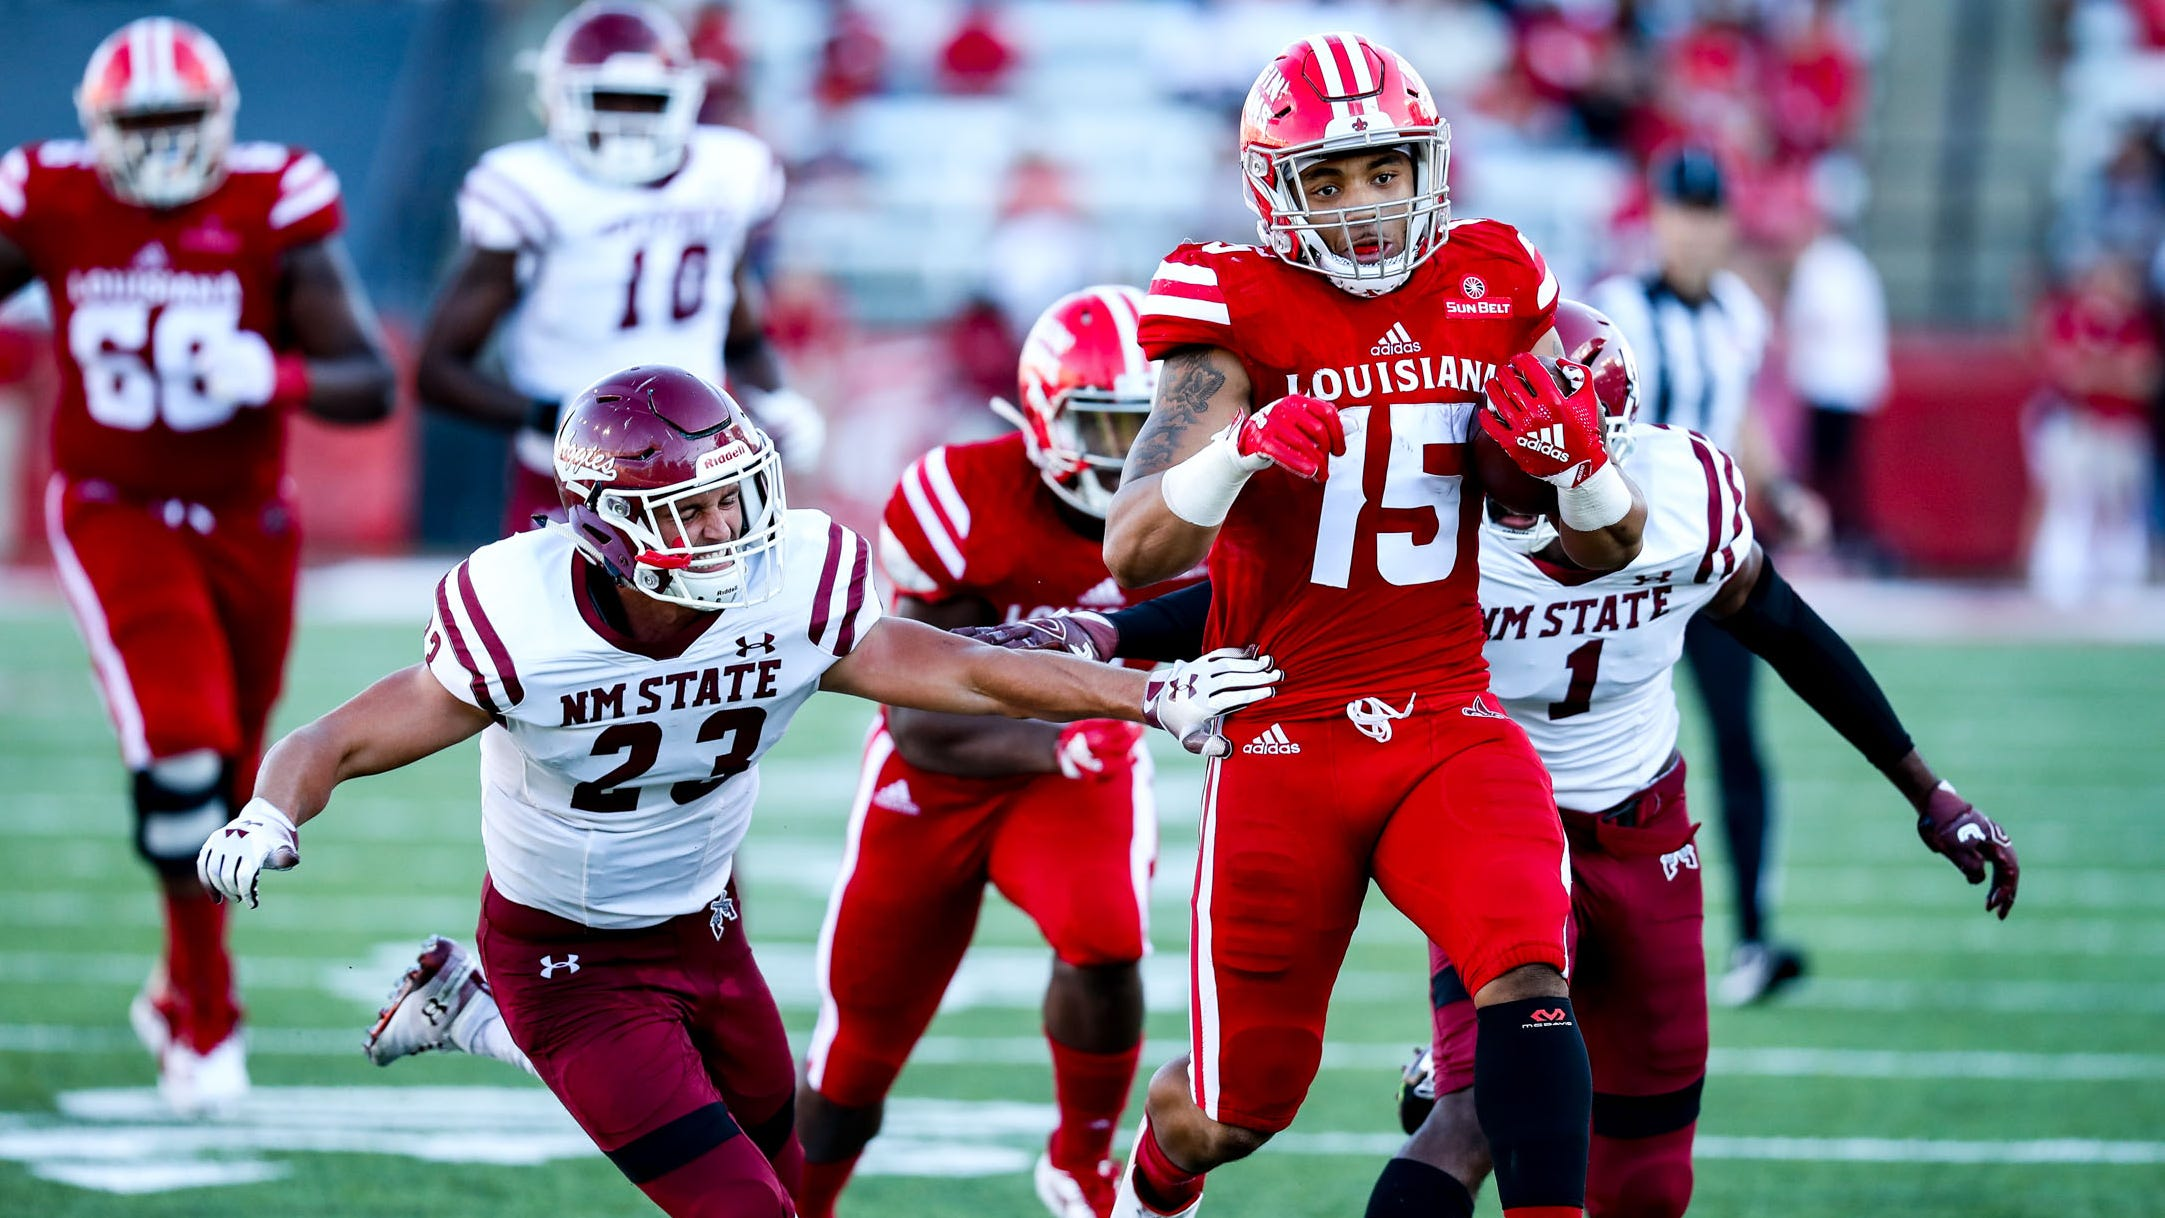 The New Mexico State defense hopes to rebound from a poor showing last week at Louisiana. The Aggies host Georgia Southern on Saturday.